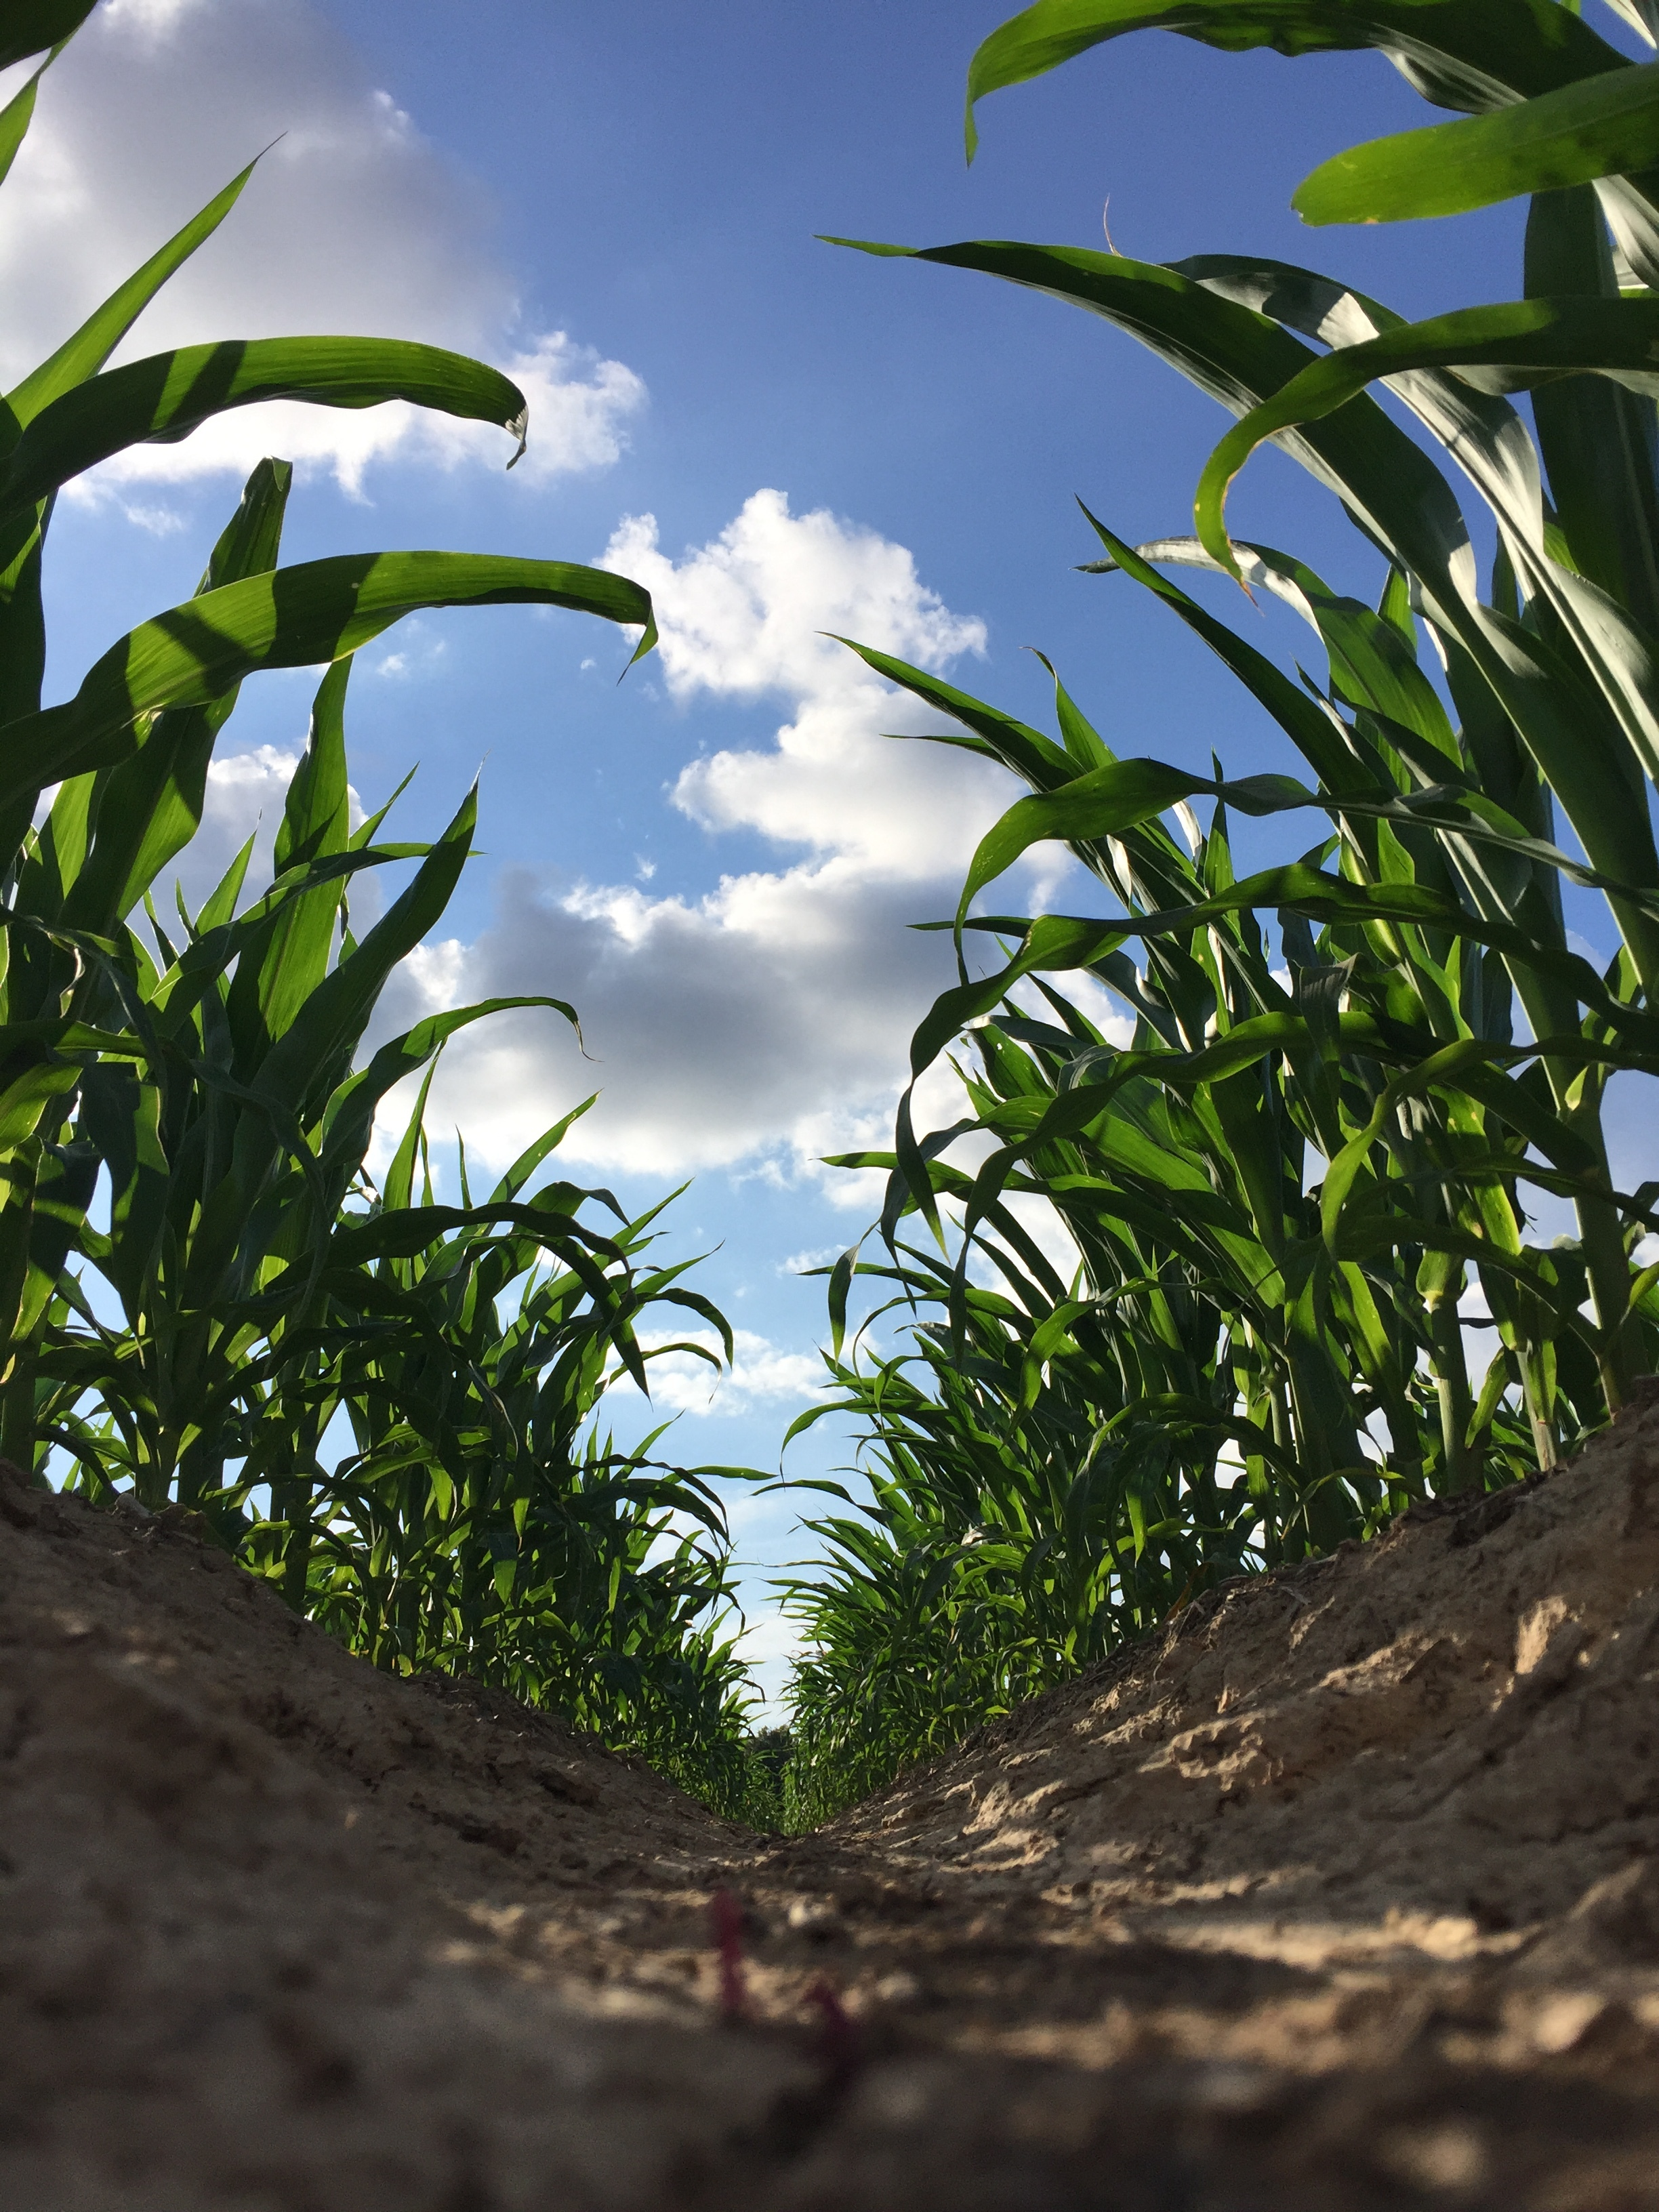 a congenitally grown corn crop   photo credit:  Morgan Baugh